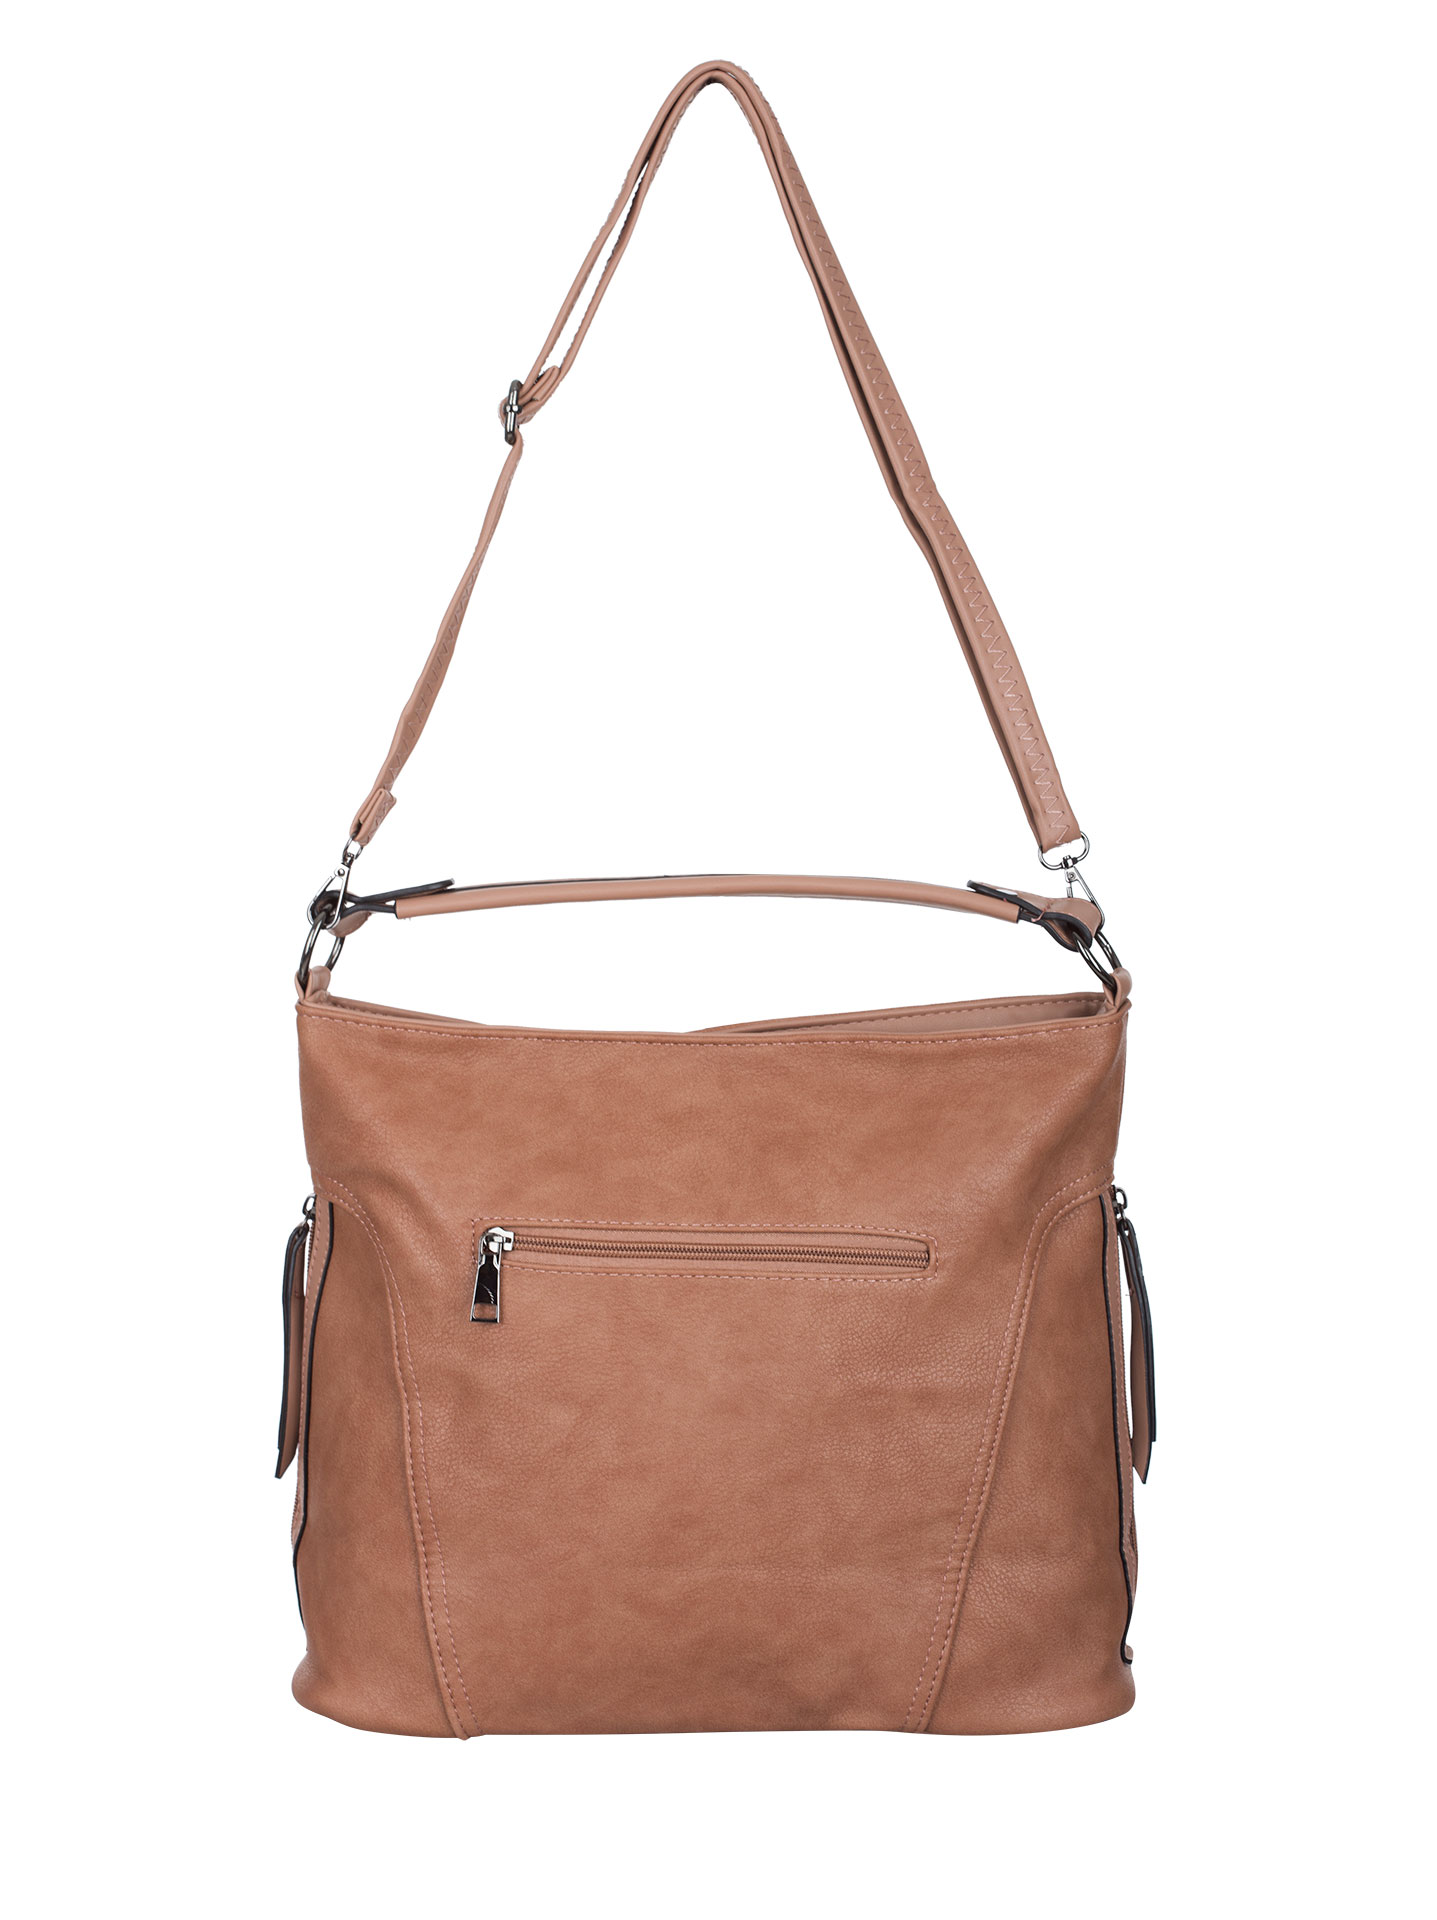 Shoulder bag with side zips in dusty pink 192ff6d869537